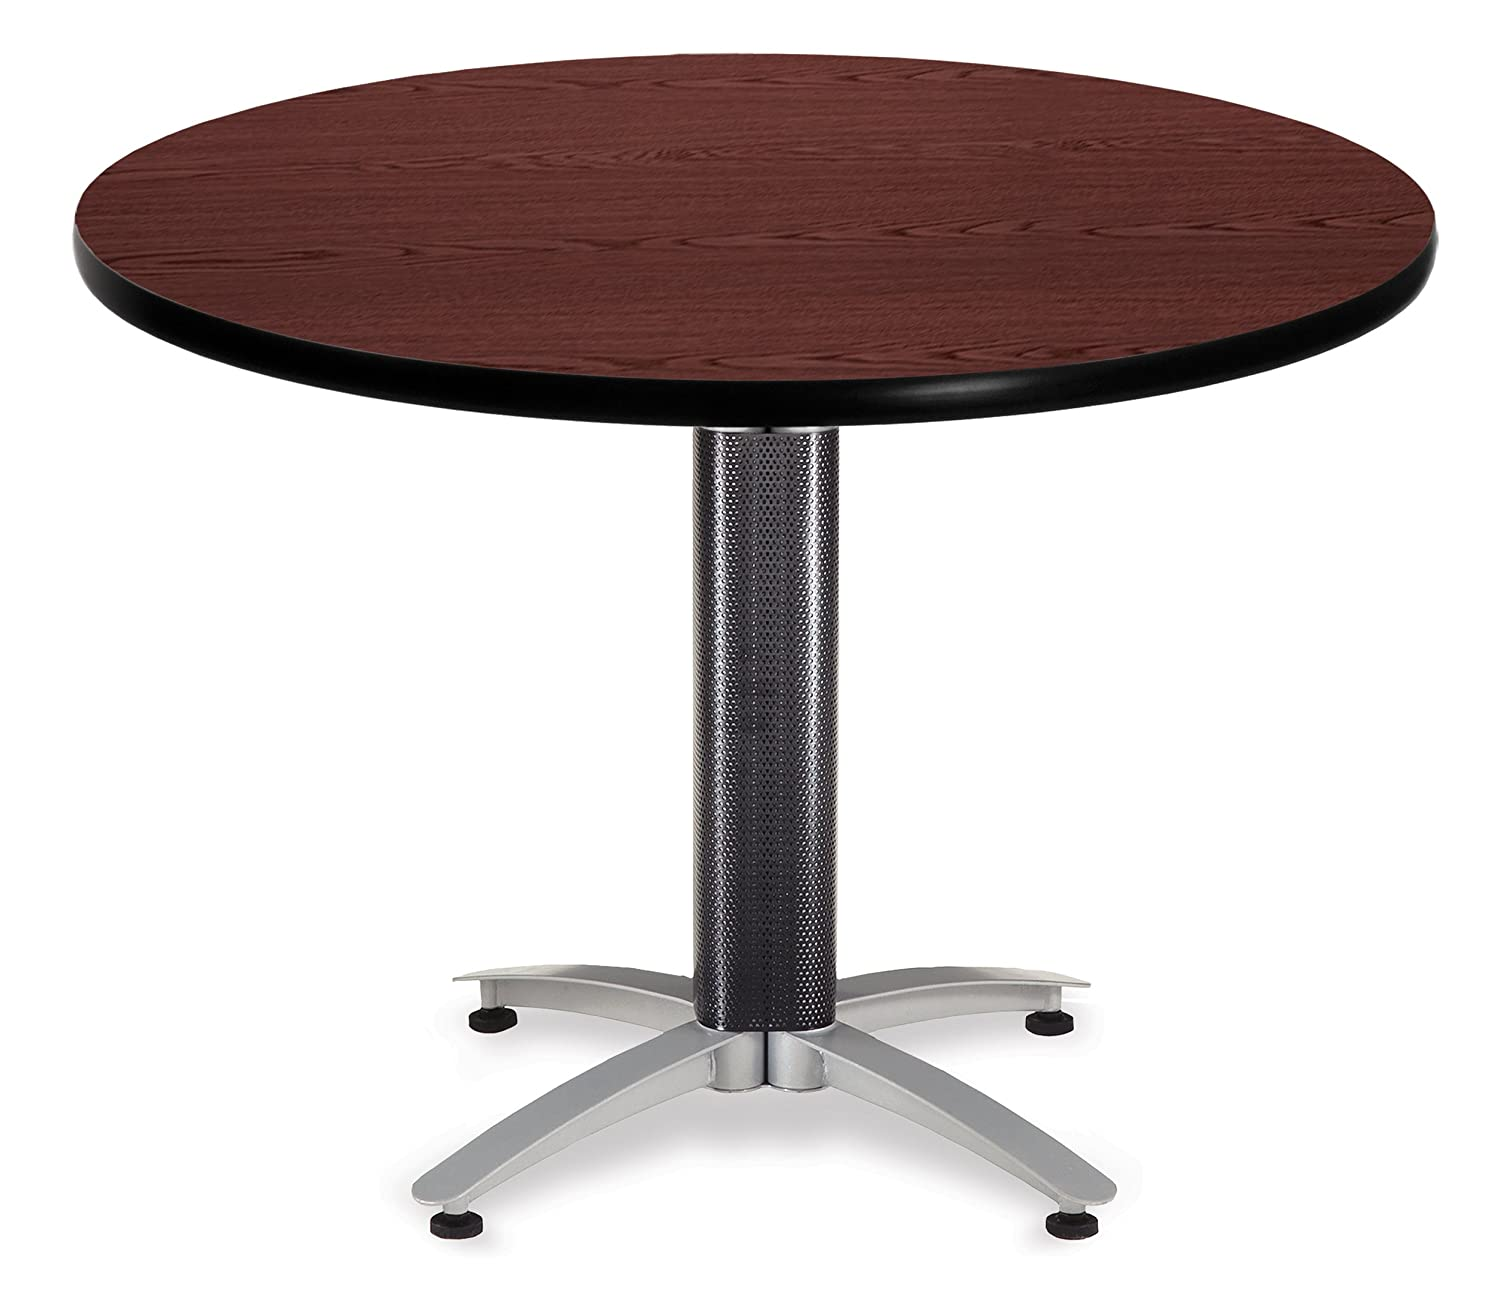 Adjustable Height Round Table.Amazon Com Ofm At42rd Mhgy Endure Series Round Table Adjustable